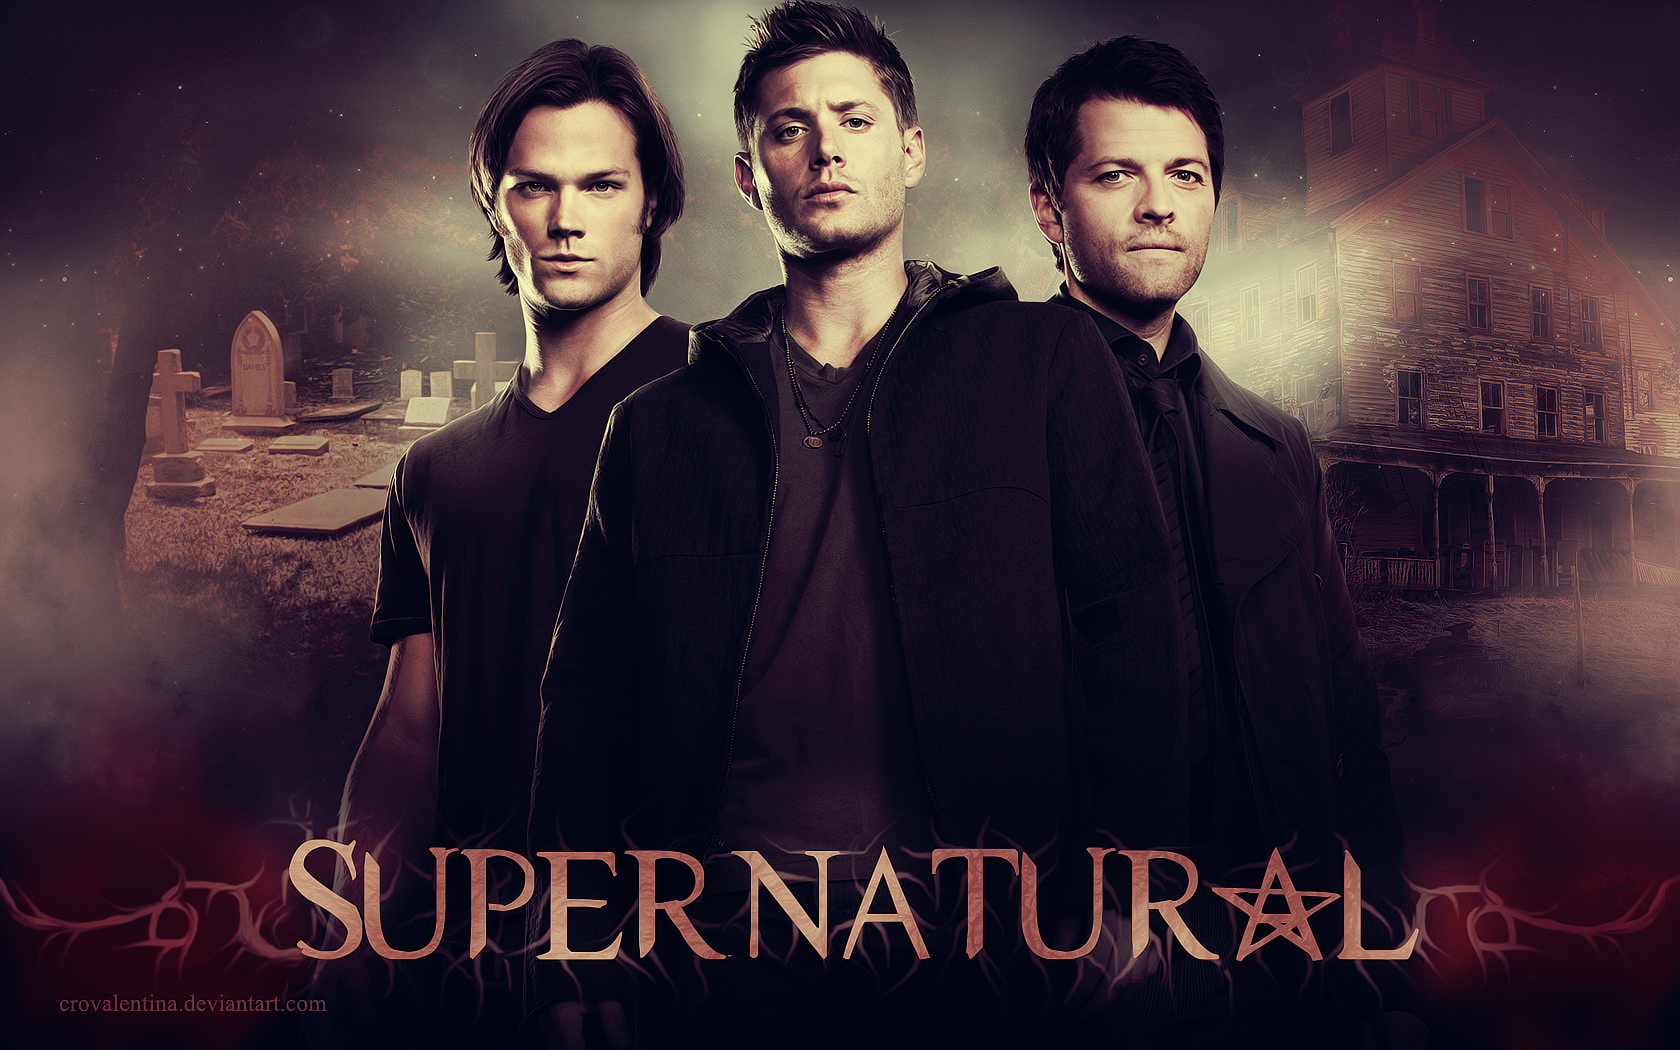 http://images5.fanpop.com/image/photos/30500000/Supernatural-supernatural-30545991-1680-1050.jpg